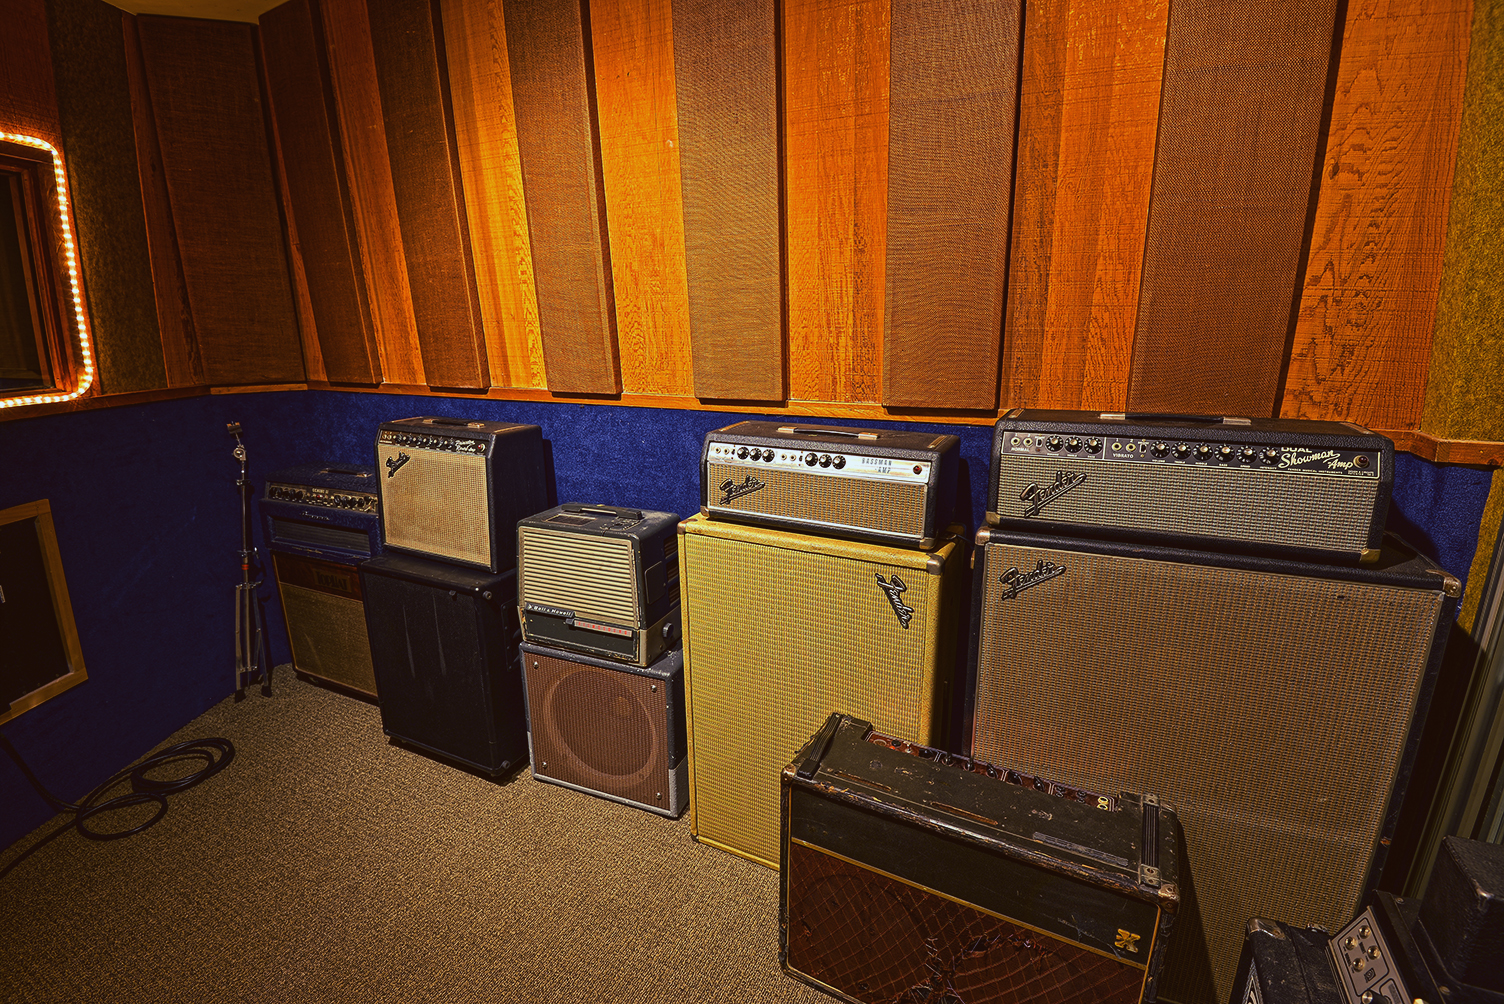 Tricks with amps and acoustic instruments - Boulevard has over a dozen vintage amps and guitars from every era as well as close to 100 pedals and effects. Try tracking guitars in a way that's both creative and economical.